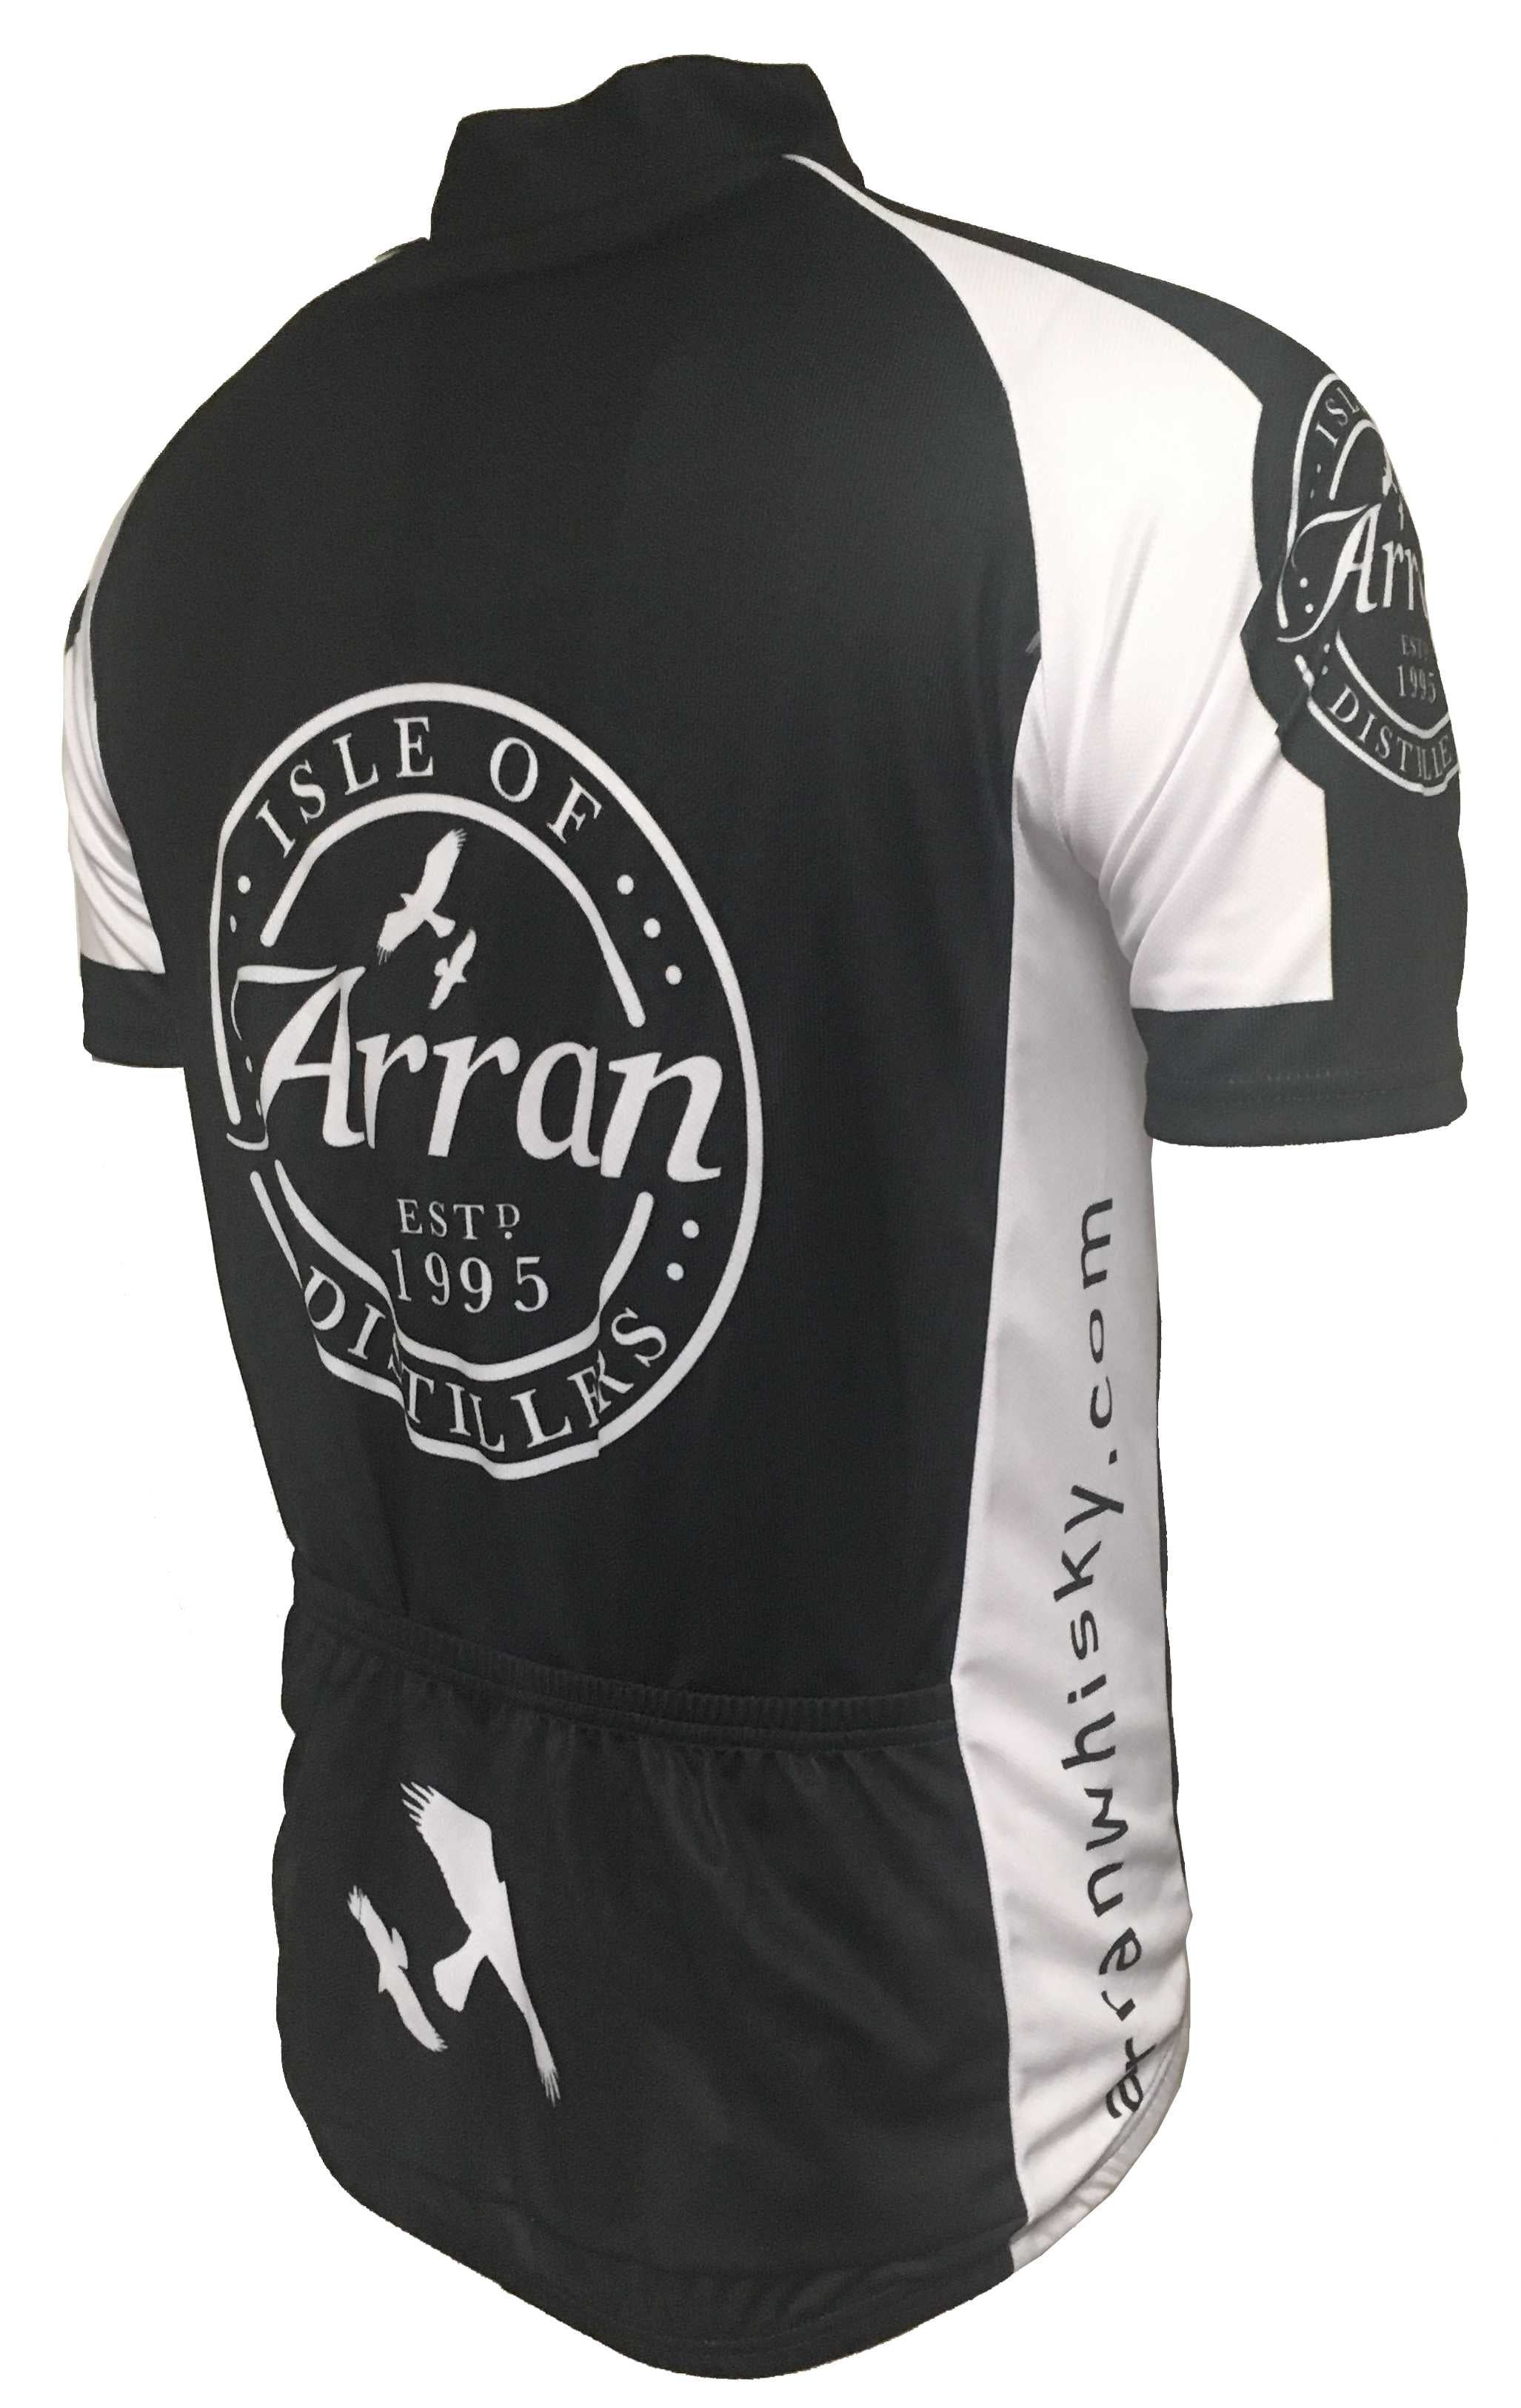 Arran Malt Whisky Black Enduro Cycling Jersey Back